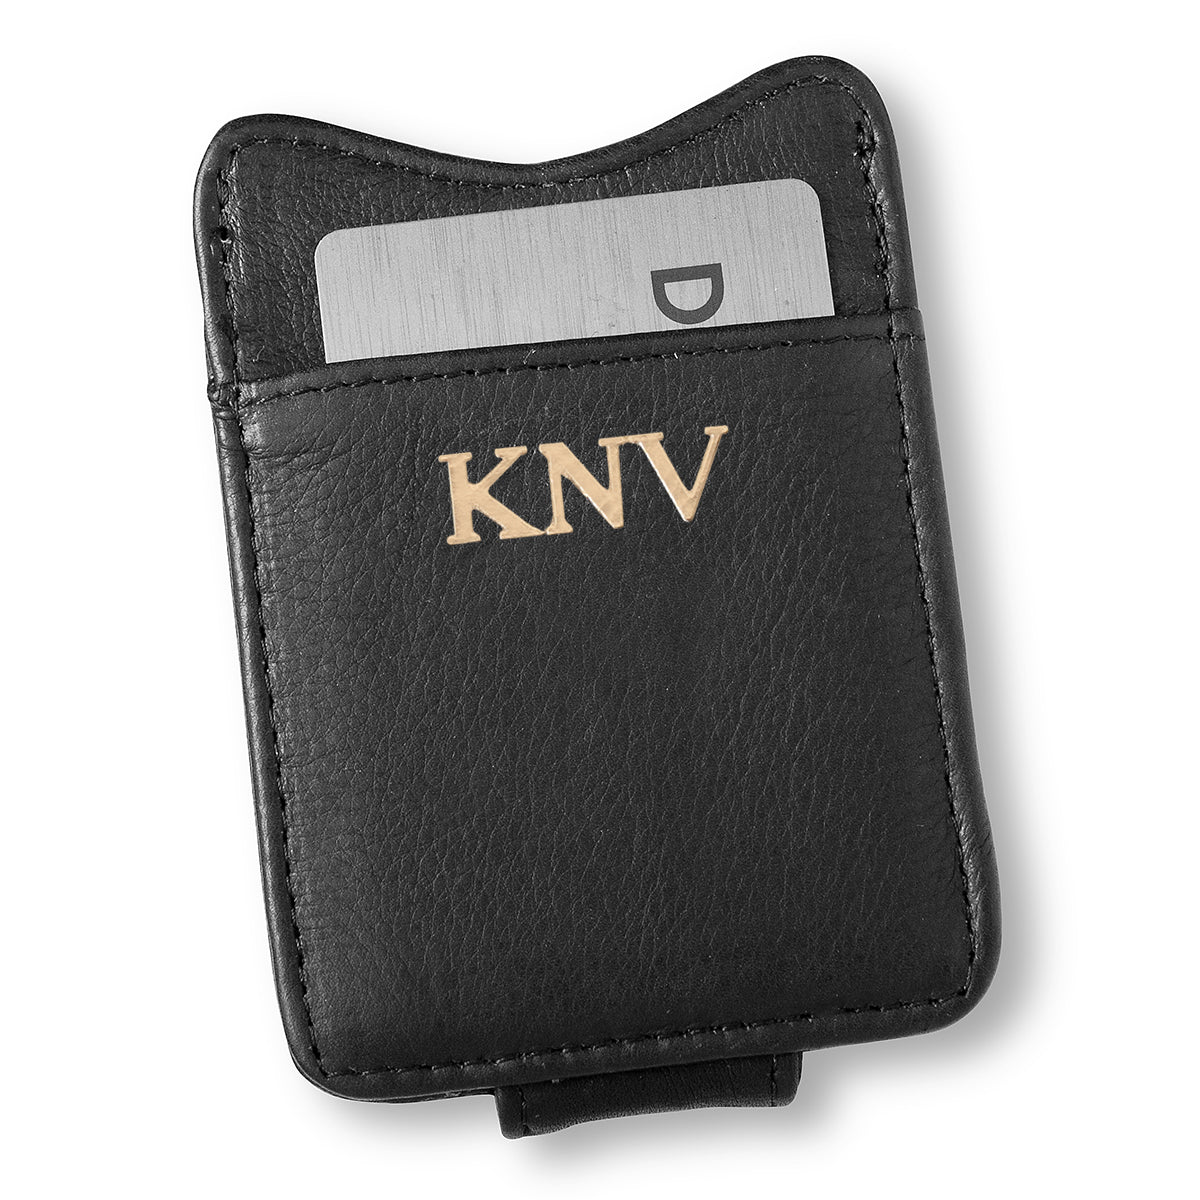 Personalized Black Borello Leather Money Clip